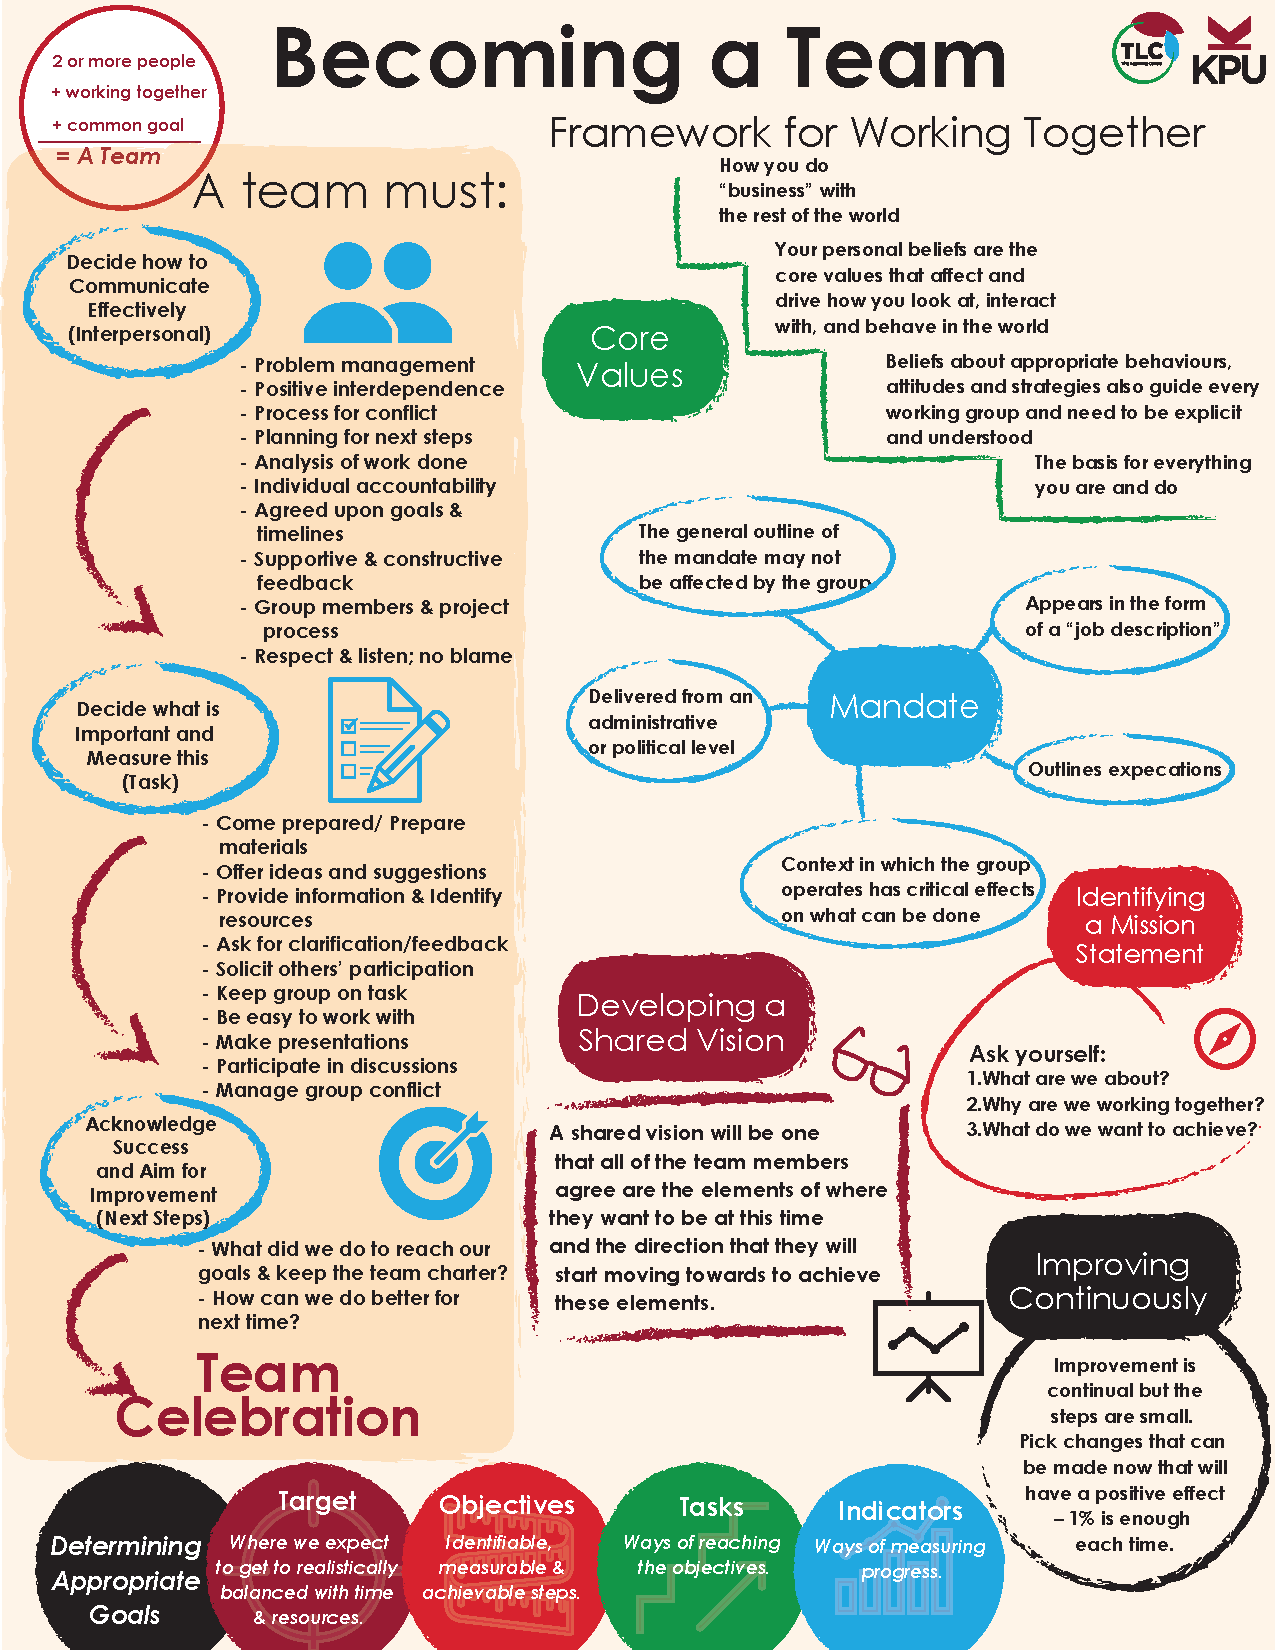 """Becoming a Team: Infographic Alt-Text 2 or more people + working together + a common goal = a team A team must: Decide how to communicate effectively (Interpersonal) •Problem management • Positive interdependence • Process for conflict • Planning for next steps • Analysis of work done • Individual accountability • Agreed upon goals and timelines • Supportive & constructive feedback • Group members & project process • Respect & listen; no blame Decide what is important and measure this (task) • Come prepared/ prepare materials • Offer ideas and suggestions • Provide information and identify resources • Ask for clarification/feedback • Solicit others' participation • Keep group on task • Be easy to work with • Make presentations • Participate in discussions • Manage group conflict Acknowledge success and aim for improvement (next steps) • What did we do to reach our goals & keep the team charter? How can we do better for next time? Framework for working together 1. Core values • Your personal beliefs are the core values that affect and drive how you look at, interact, with, and behave in the world • How you do """"business"""" with the rest of the world • The basis for everything you are and do • Beliefs about appropriate behaviours, attitudes, and strategies also guide every working group and need to be explicit and understood 2. Mandate • Outlines expectations • Delivered from an administrative of political level • Appears in the form of a """"job description"""" • The general outline of a mandate may not be affected by the group • Context in which the group operates and has critical effects on what can be done 3. Identifying a mission statement: Ask yourself: a. What are we about? b. Why are we working together? c. What do we want to achieve? 4. Developing a shared vision: A shared vision will be one that all of the team members agree are the elements of where they want to get to at this time and the direction that they will start moving towards to achieve these elements 5. De"""